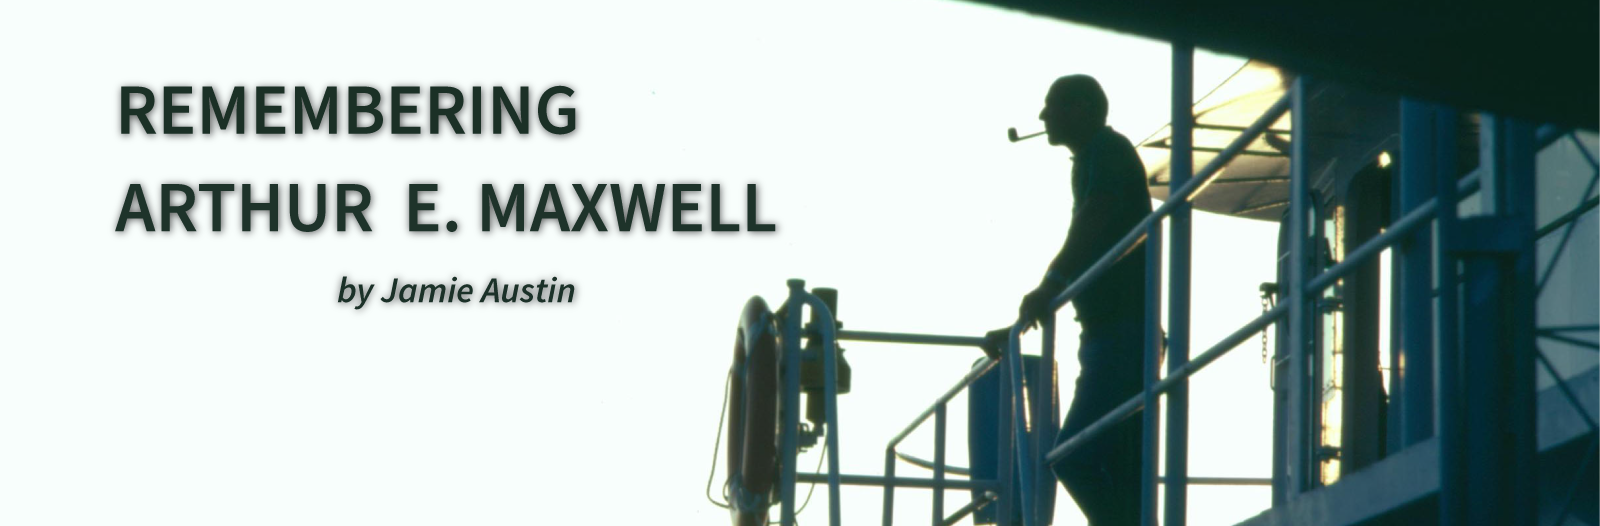 Remembering Art Maxwell banner